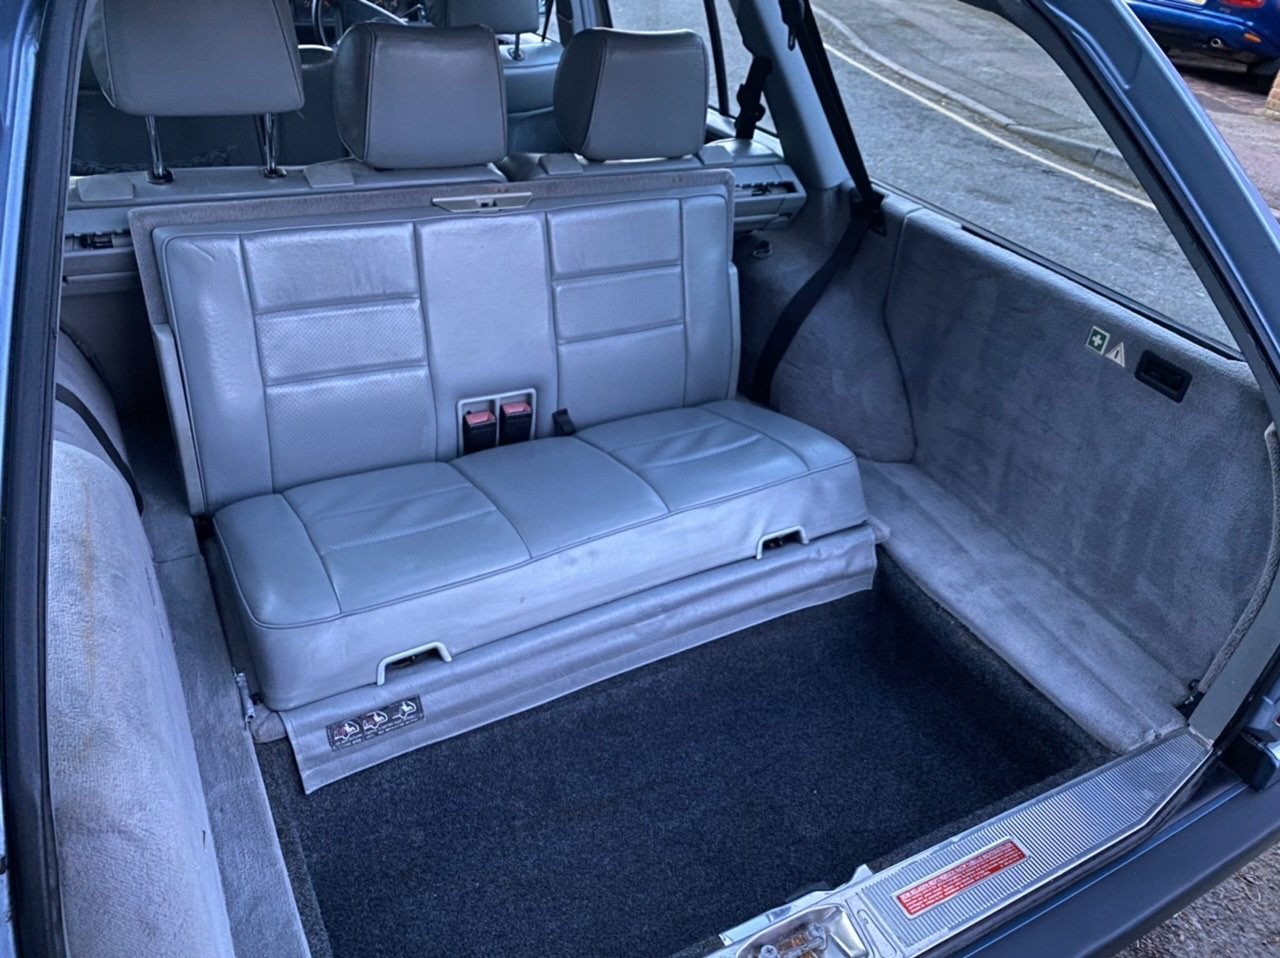 1991 Mercedes 300TE 24v For Sale (picture 5 of 6)